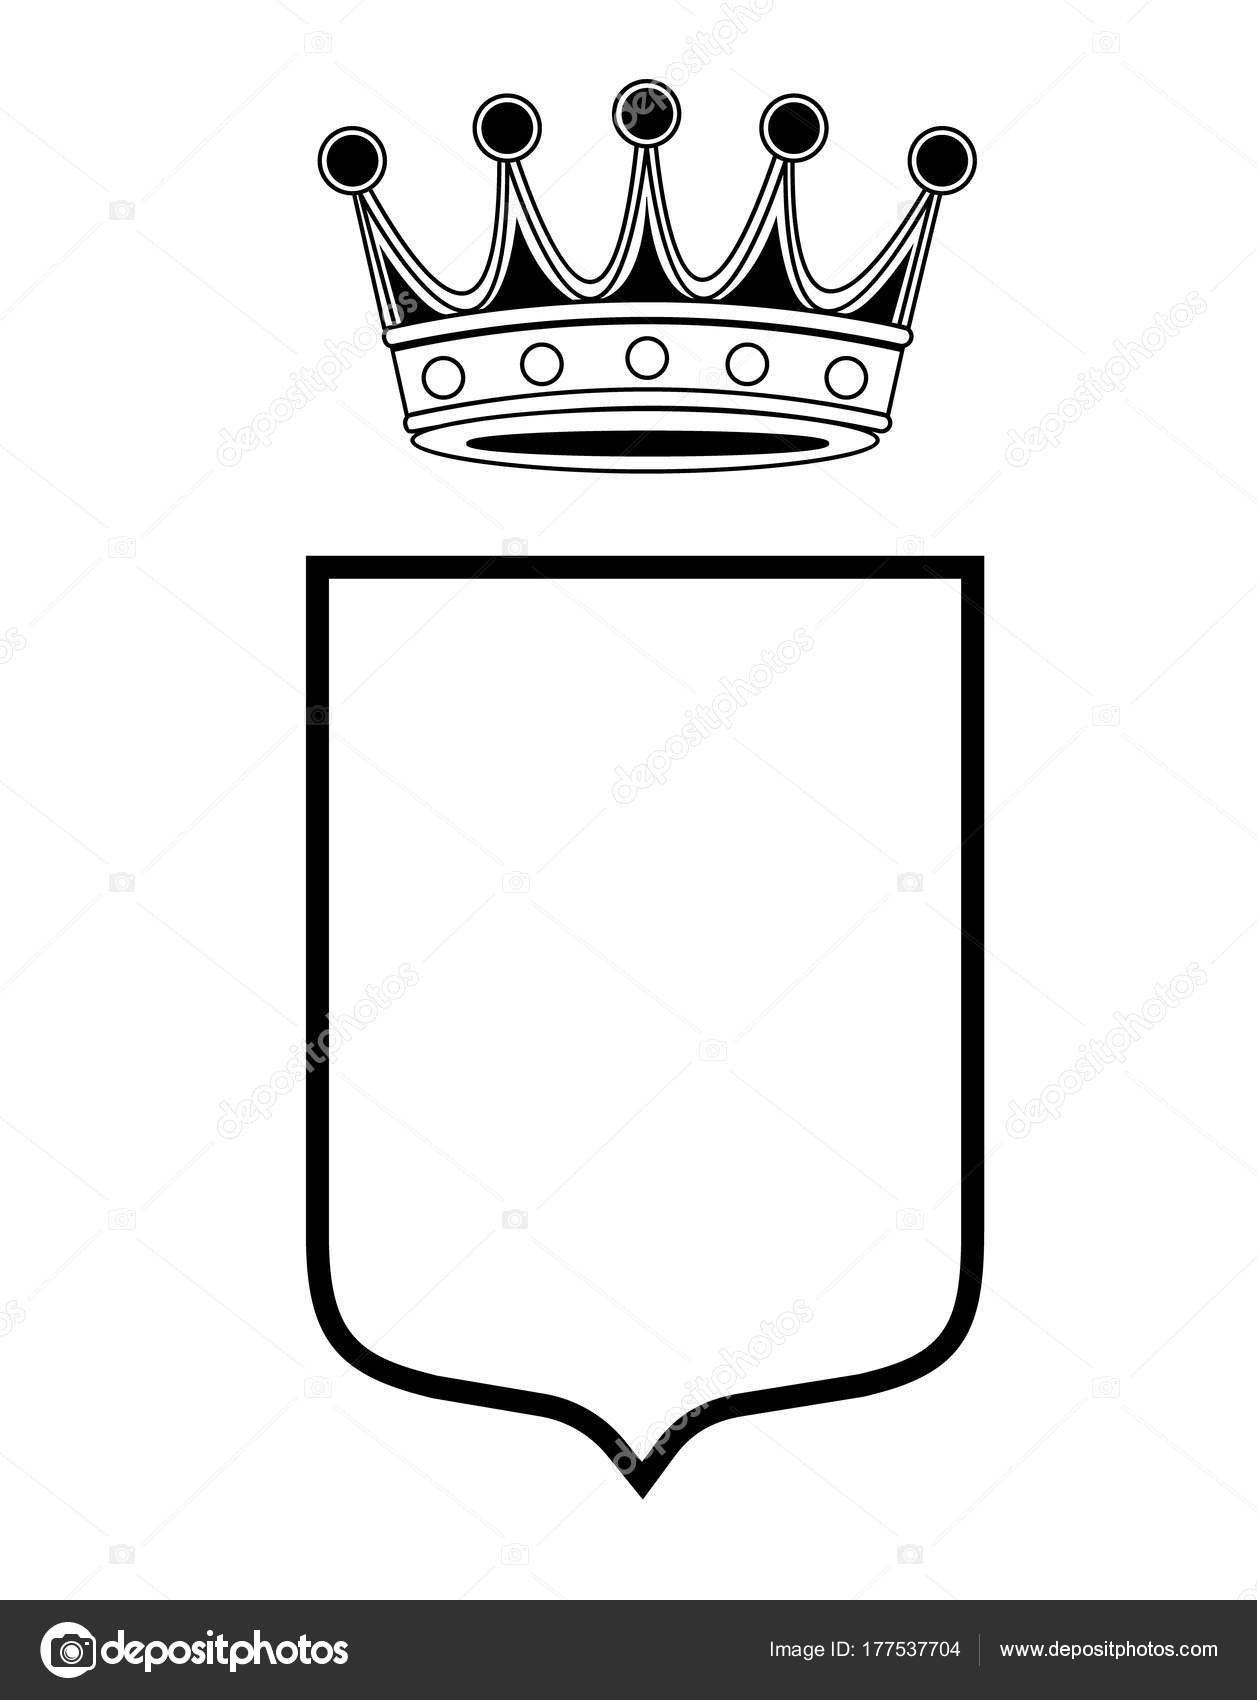 1257x1700 Coat Of Arms Template New Family Shield Template Crown Coat Arms